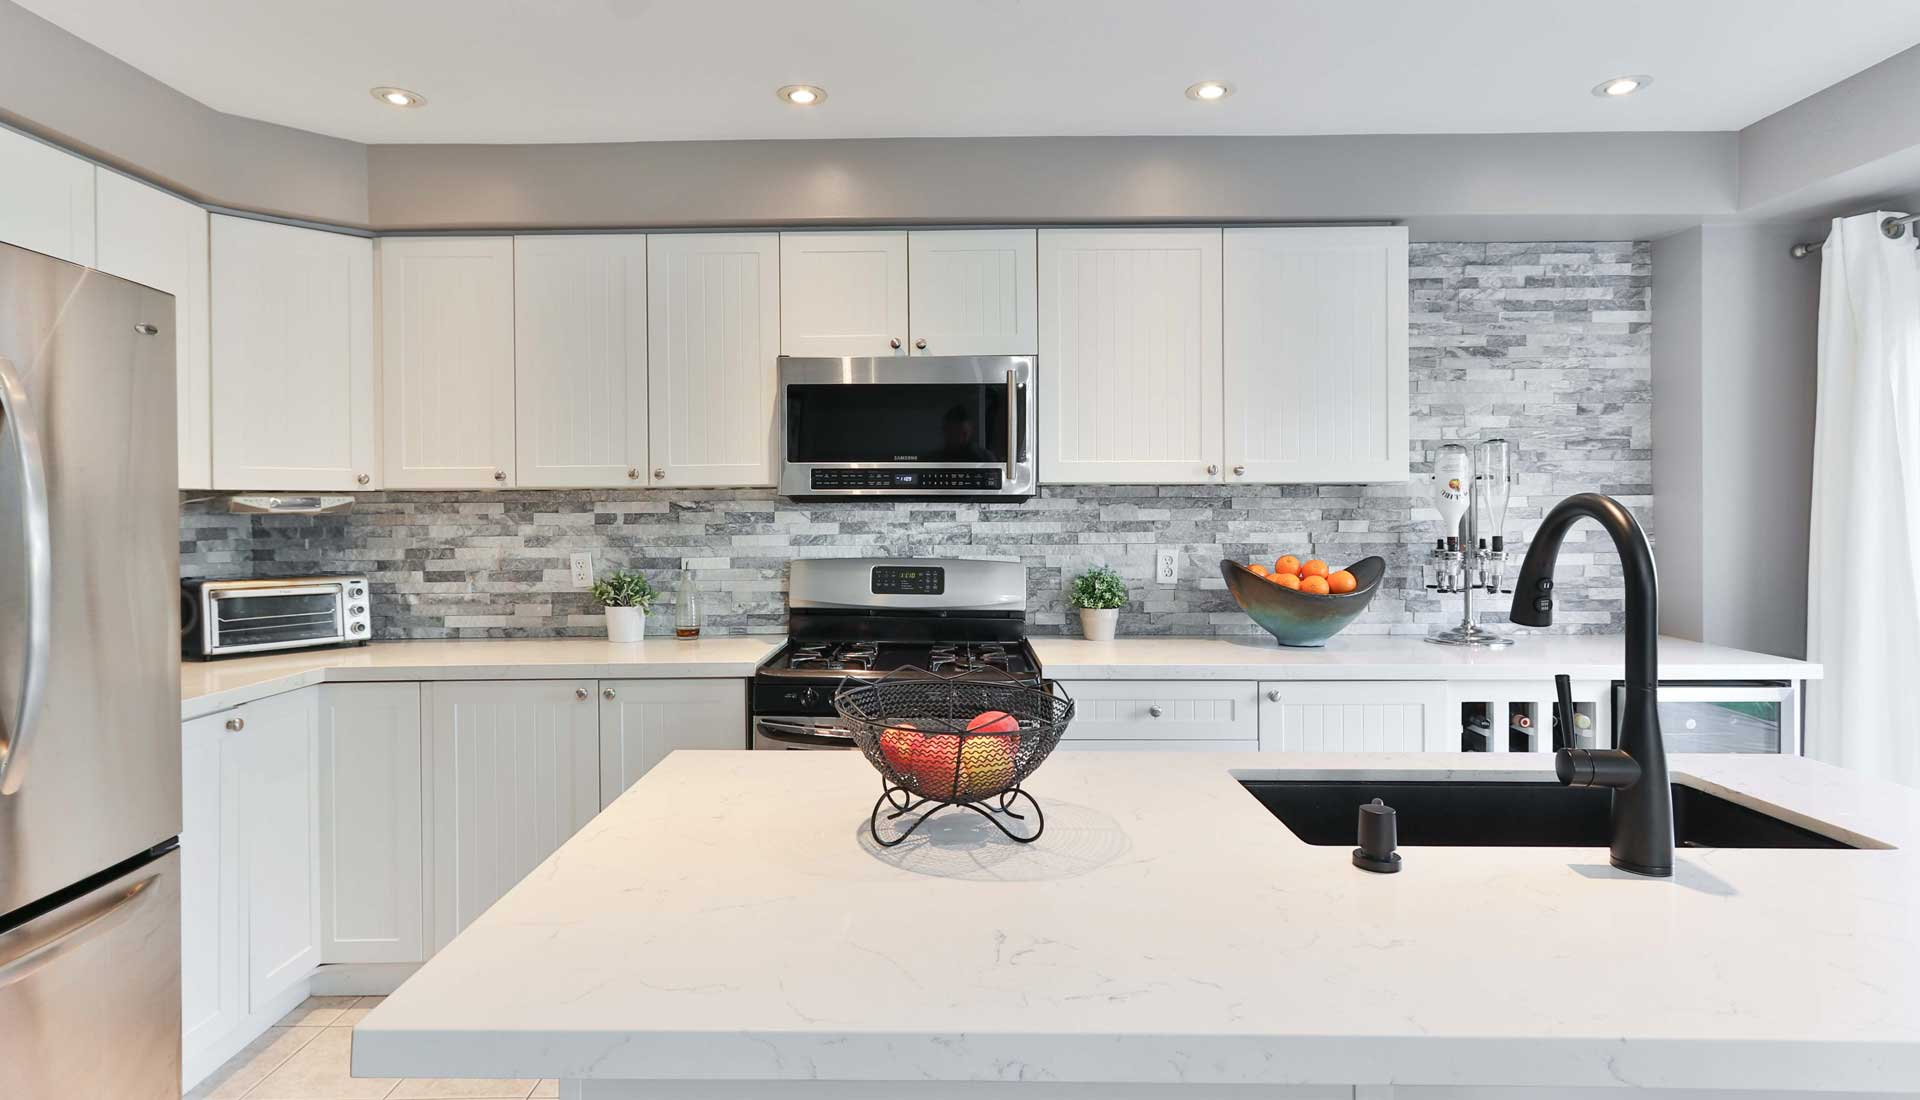 White kitchen island with black sink and faucet sits in front of a white kitchen countertop with white cabinetry and a black stove